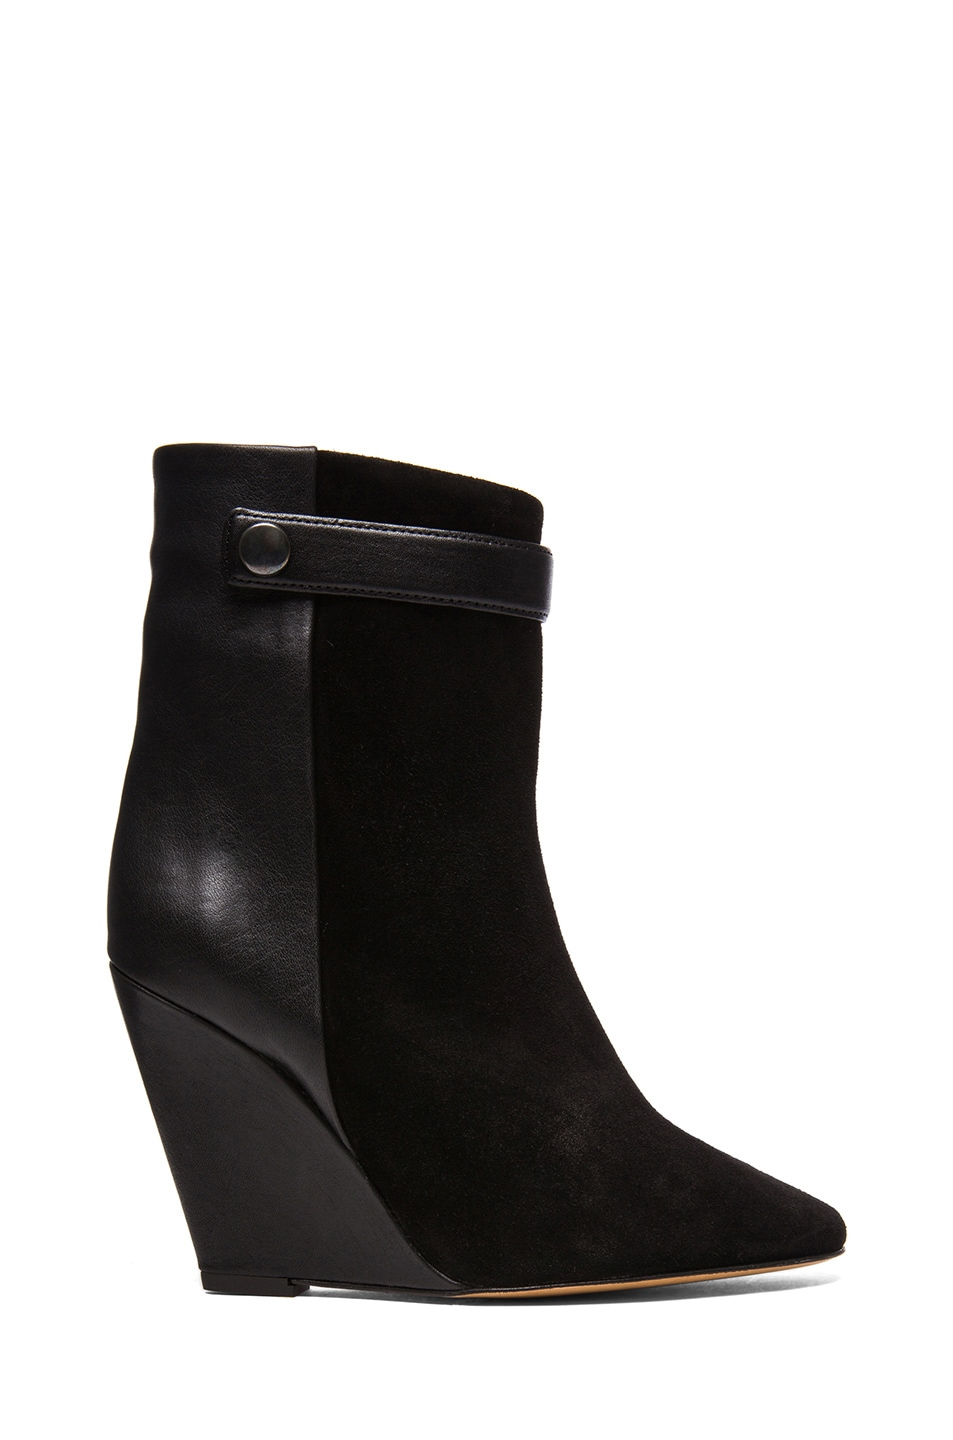 Image 1 of Isabel Marant Purdey Calfskin Velvet & Leather Booties in Black